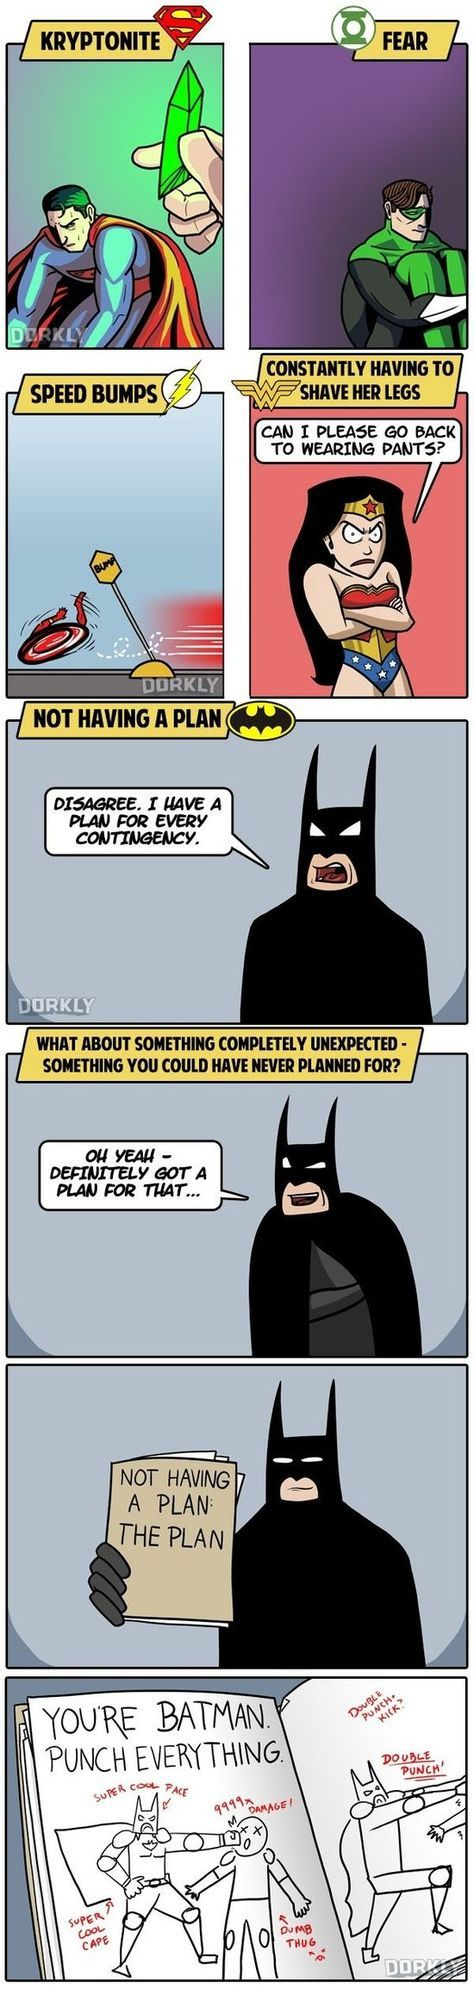 The 5 Greatest Weaknesses Of DC Superheroes. #lol #haha #funny